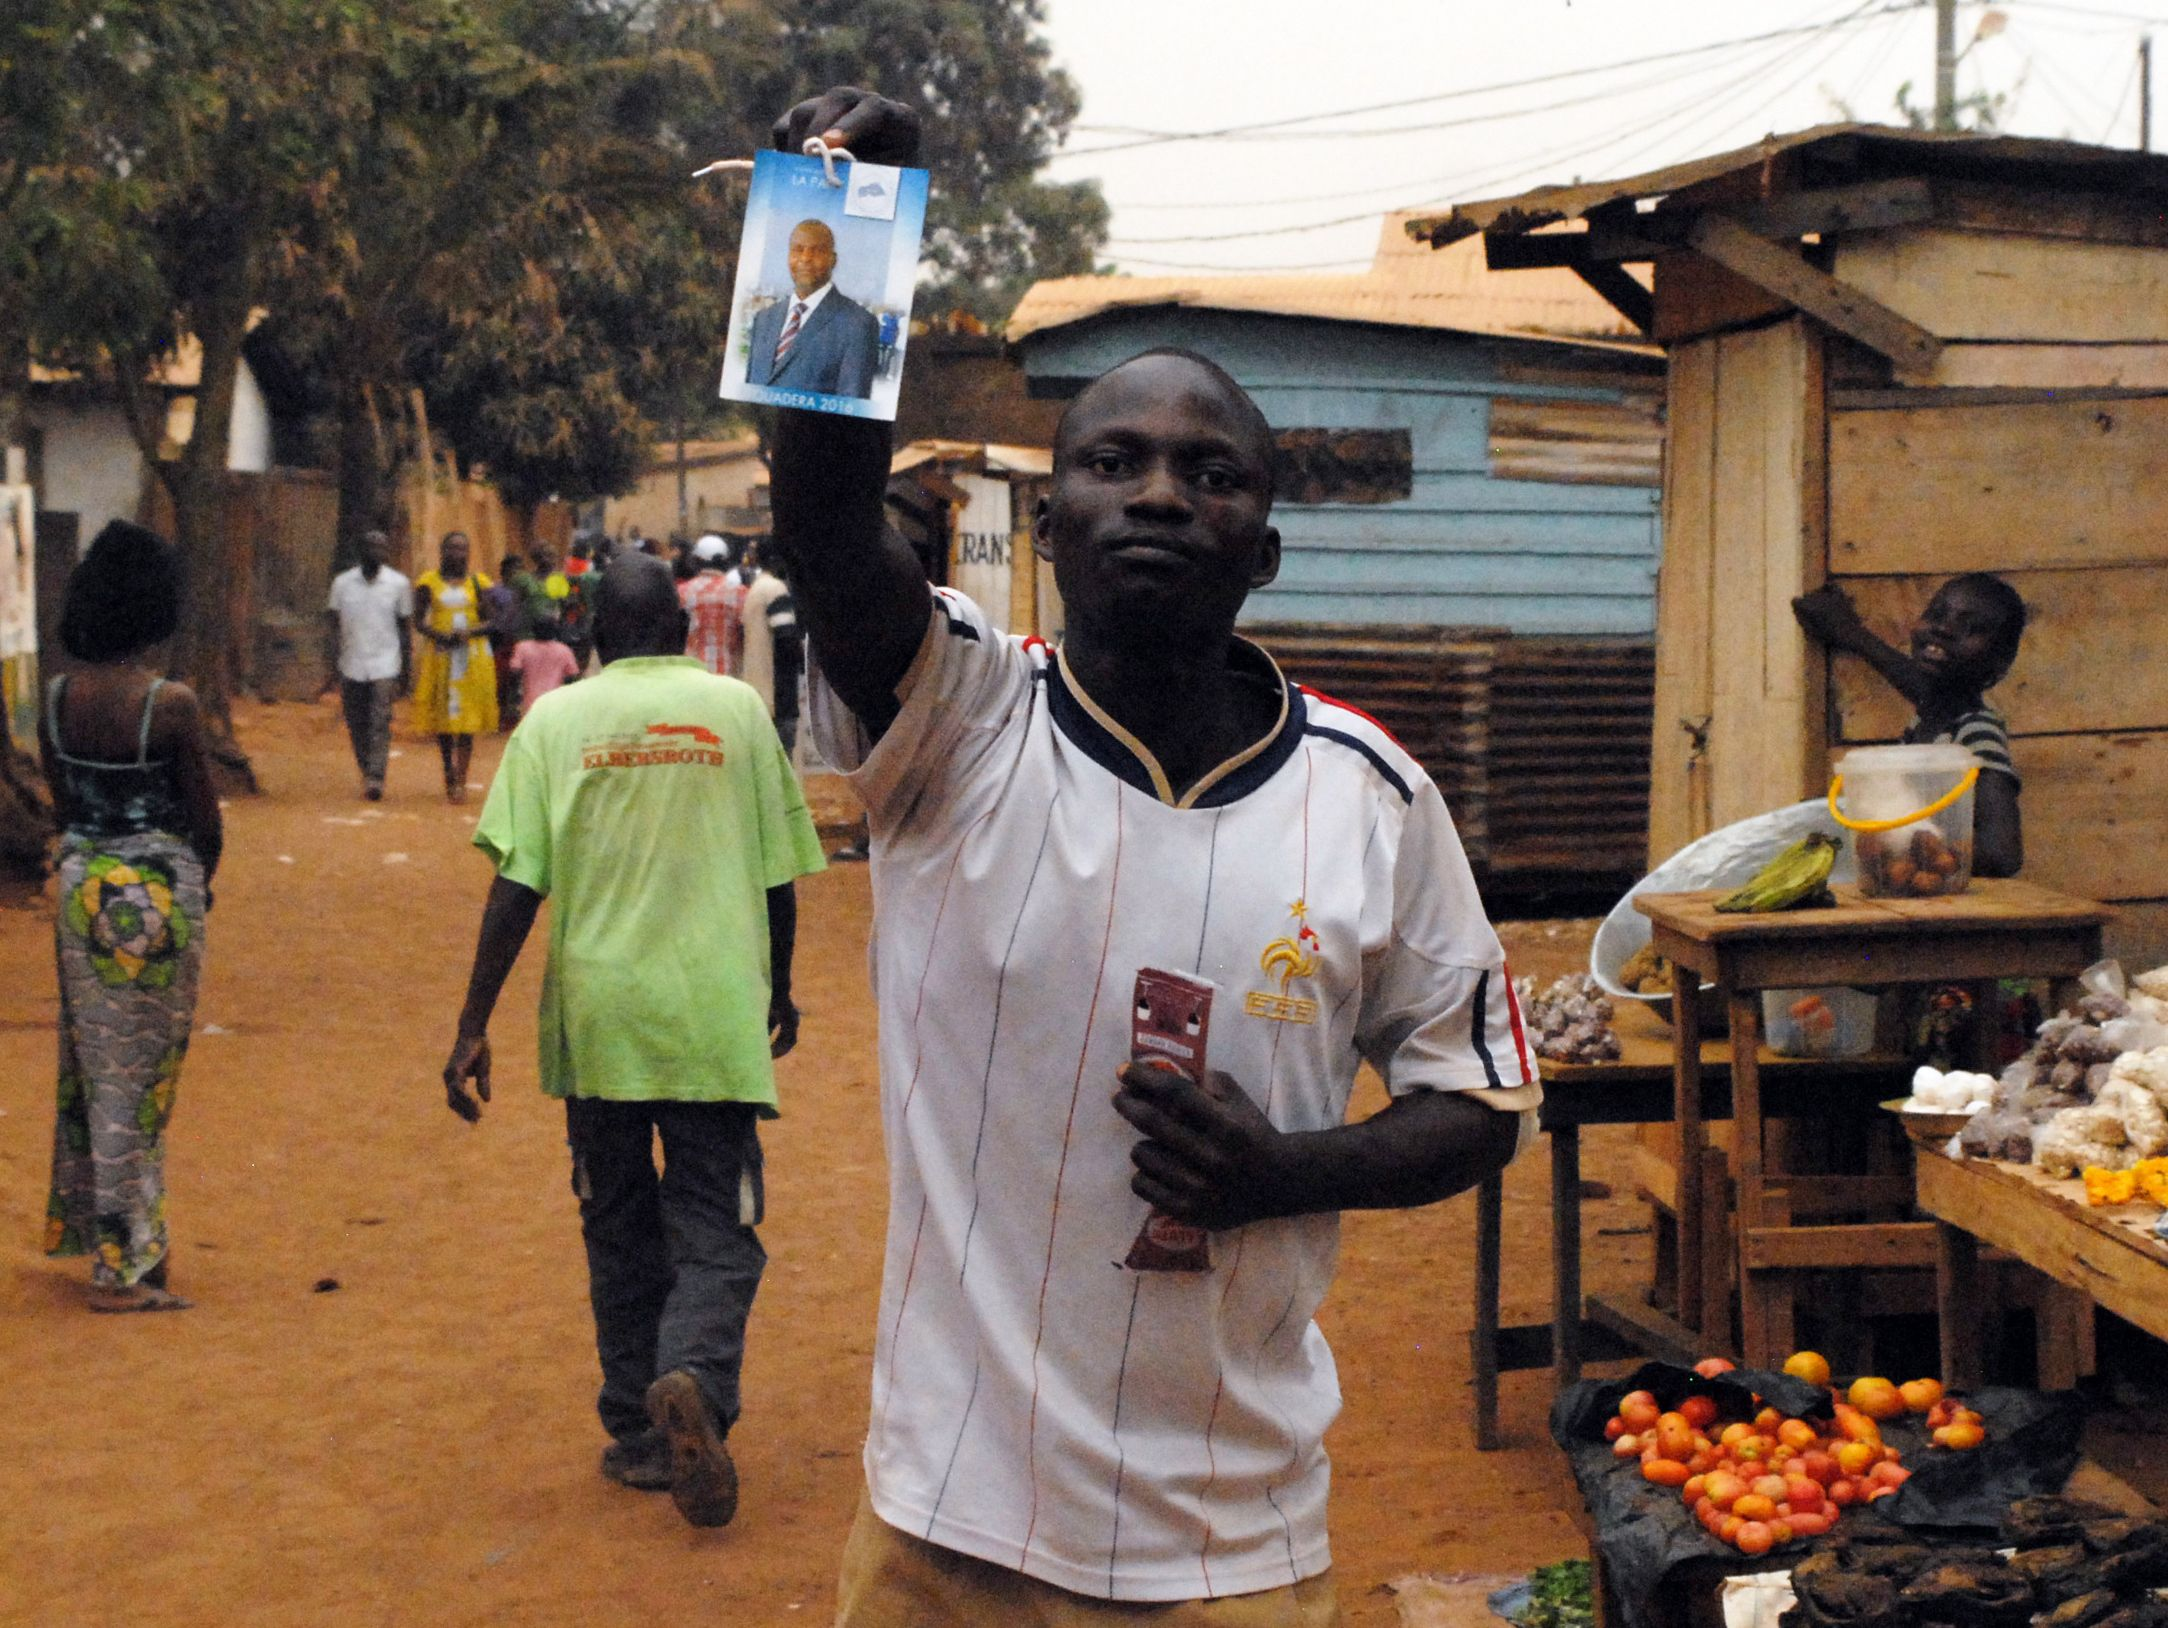 A supporter of Central African Republic's new president Faustin Archange Touadera celebrates.